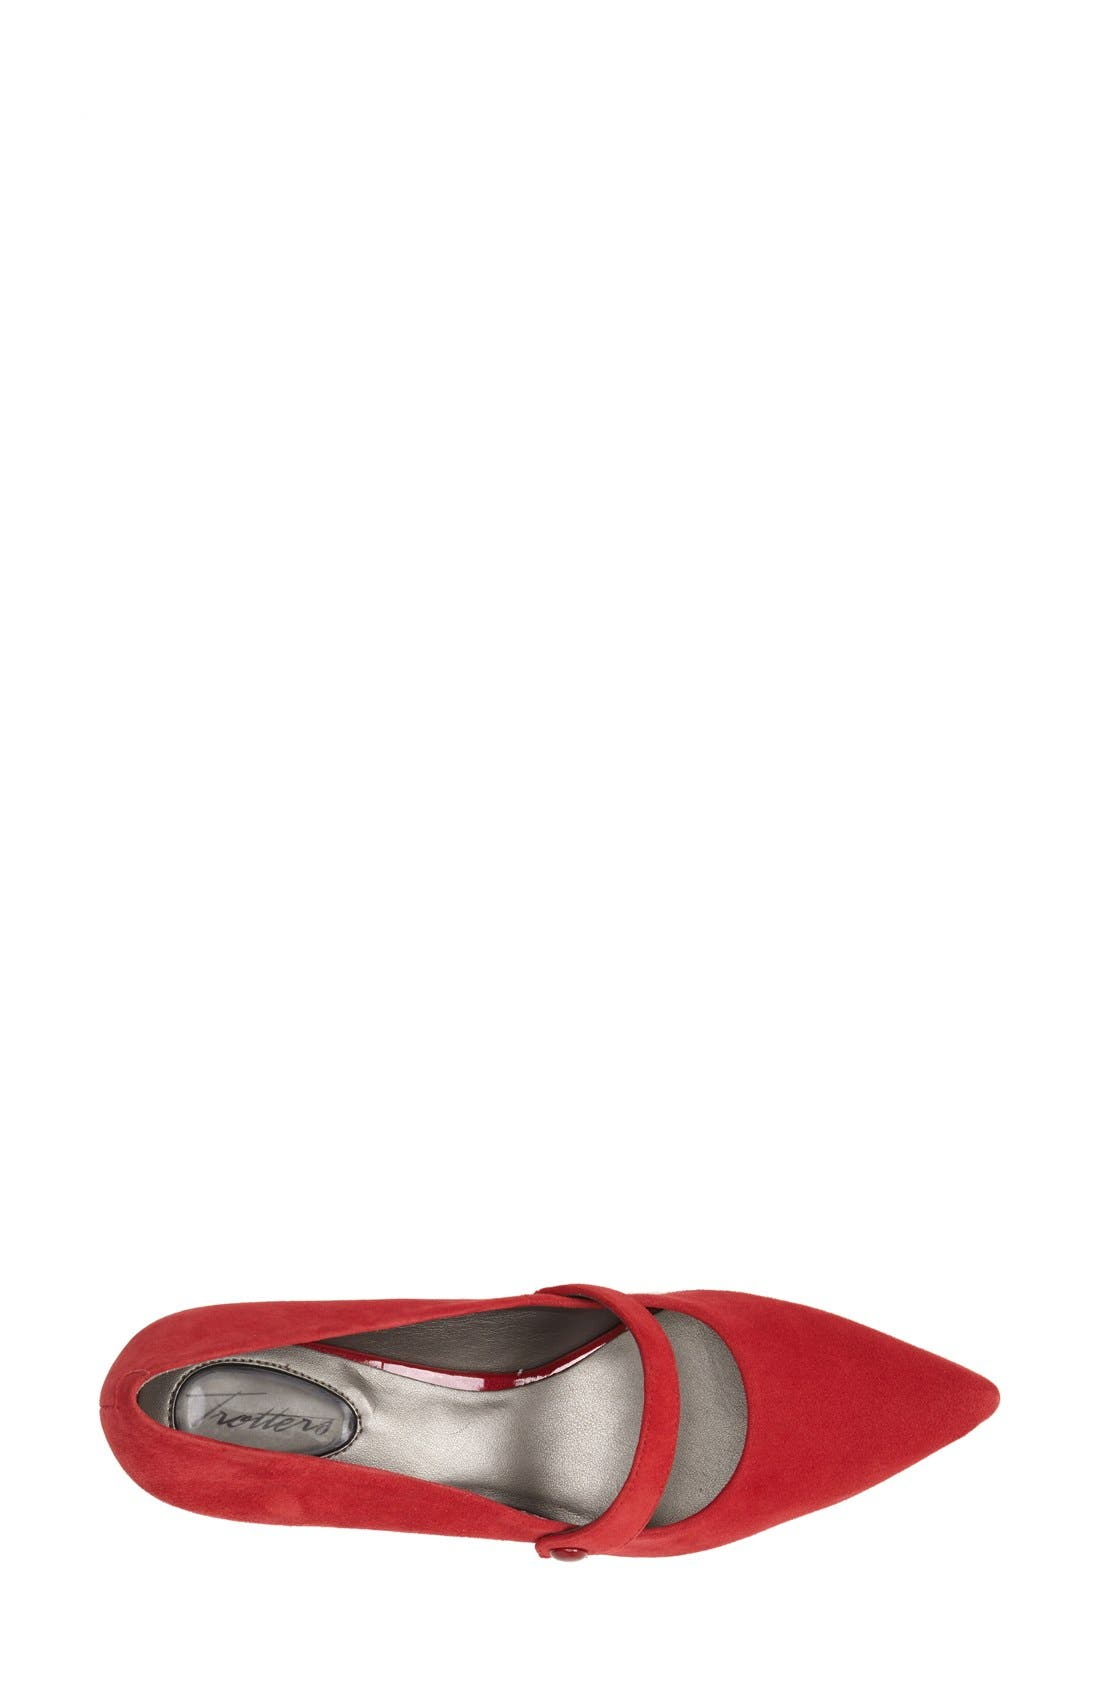 'Petra' Pump,                             Alternate thumbnail 3, color,                             Red Suede